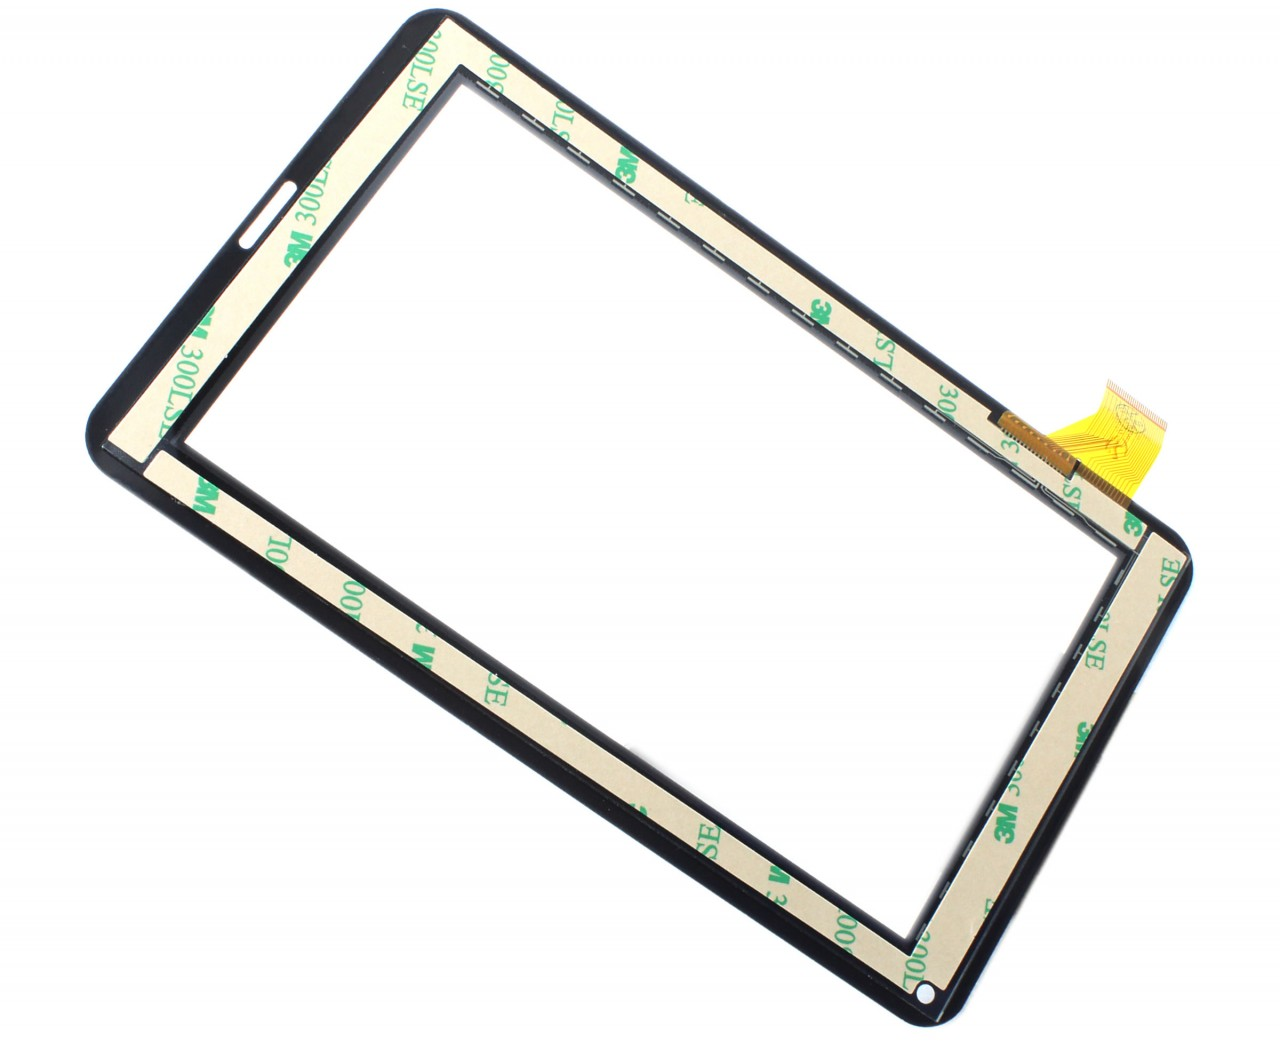 Touchscreen Digitizer eBoda Impresspeed E351 Geam Sticla Tableta imagine powerlaptop.ro 2021